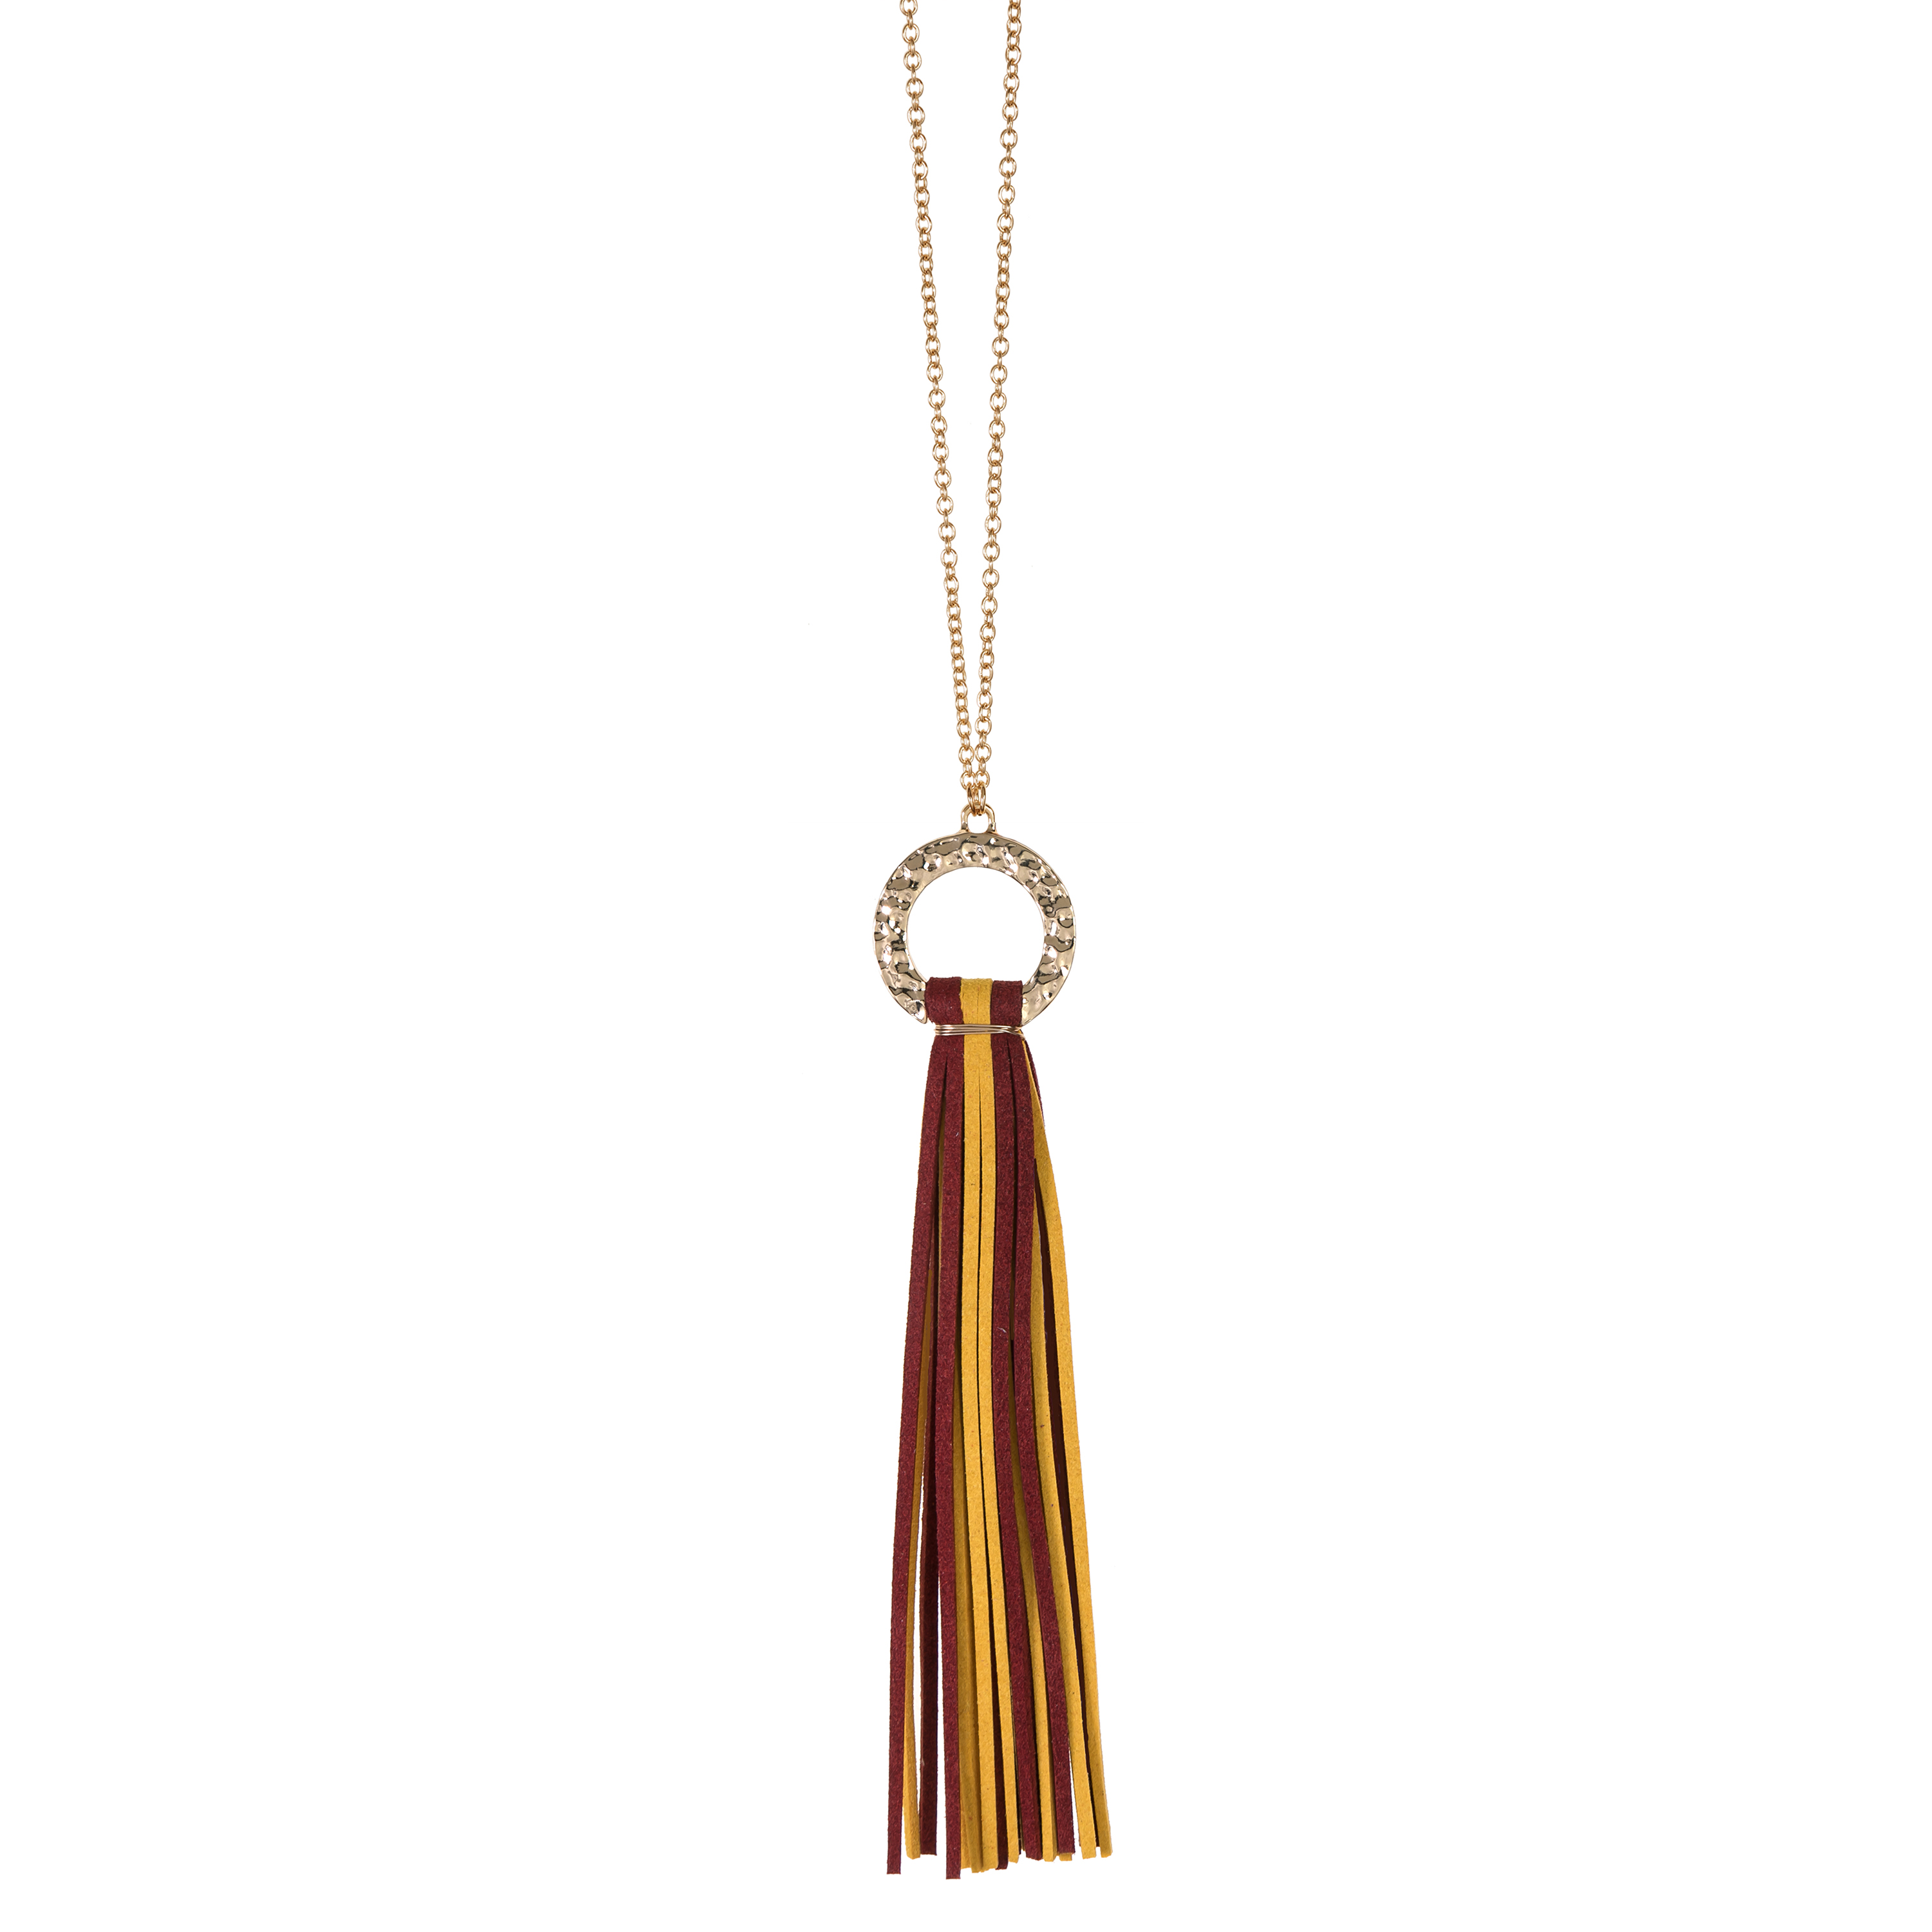 Maroon and Yellow suede tassel necklace with gold hammered hoop and nickel free